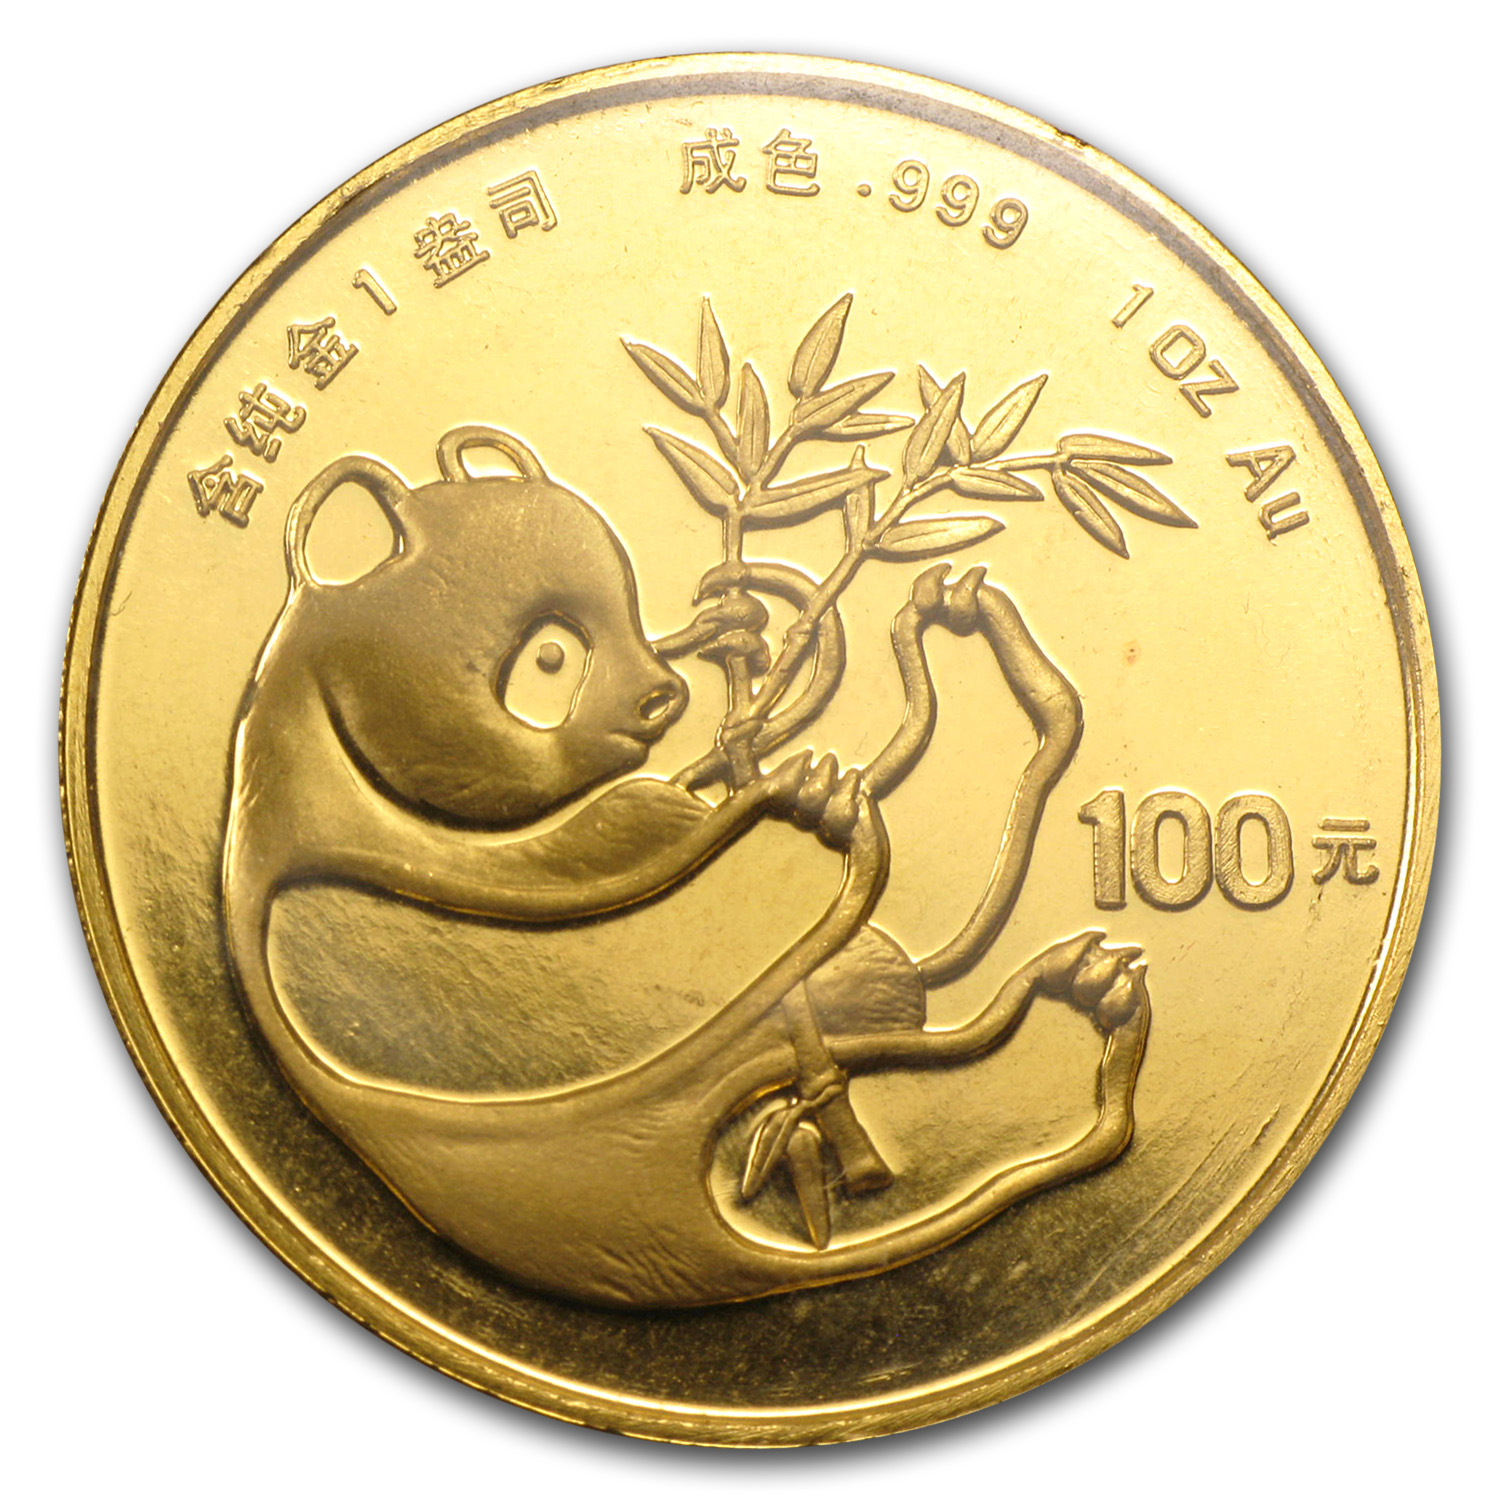 1984 China 1 oz Gold Panda BU (Sealed)